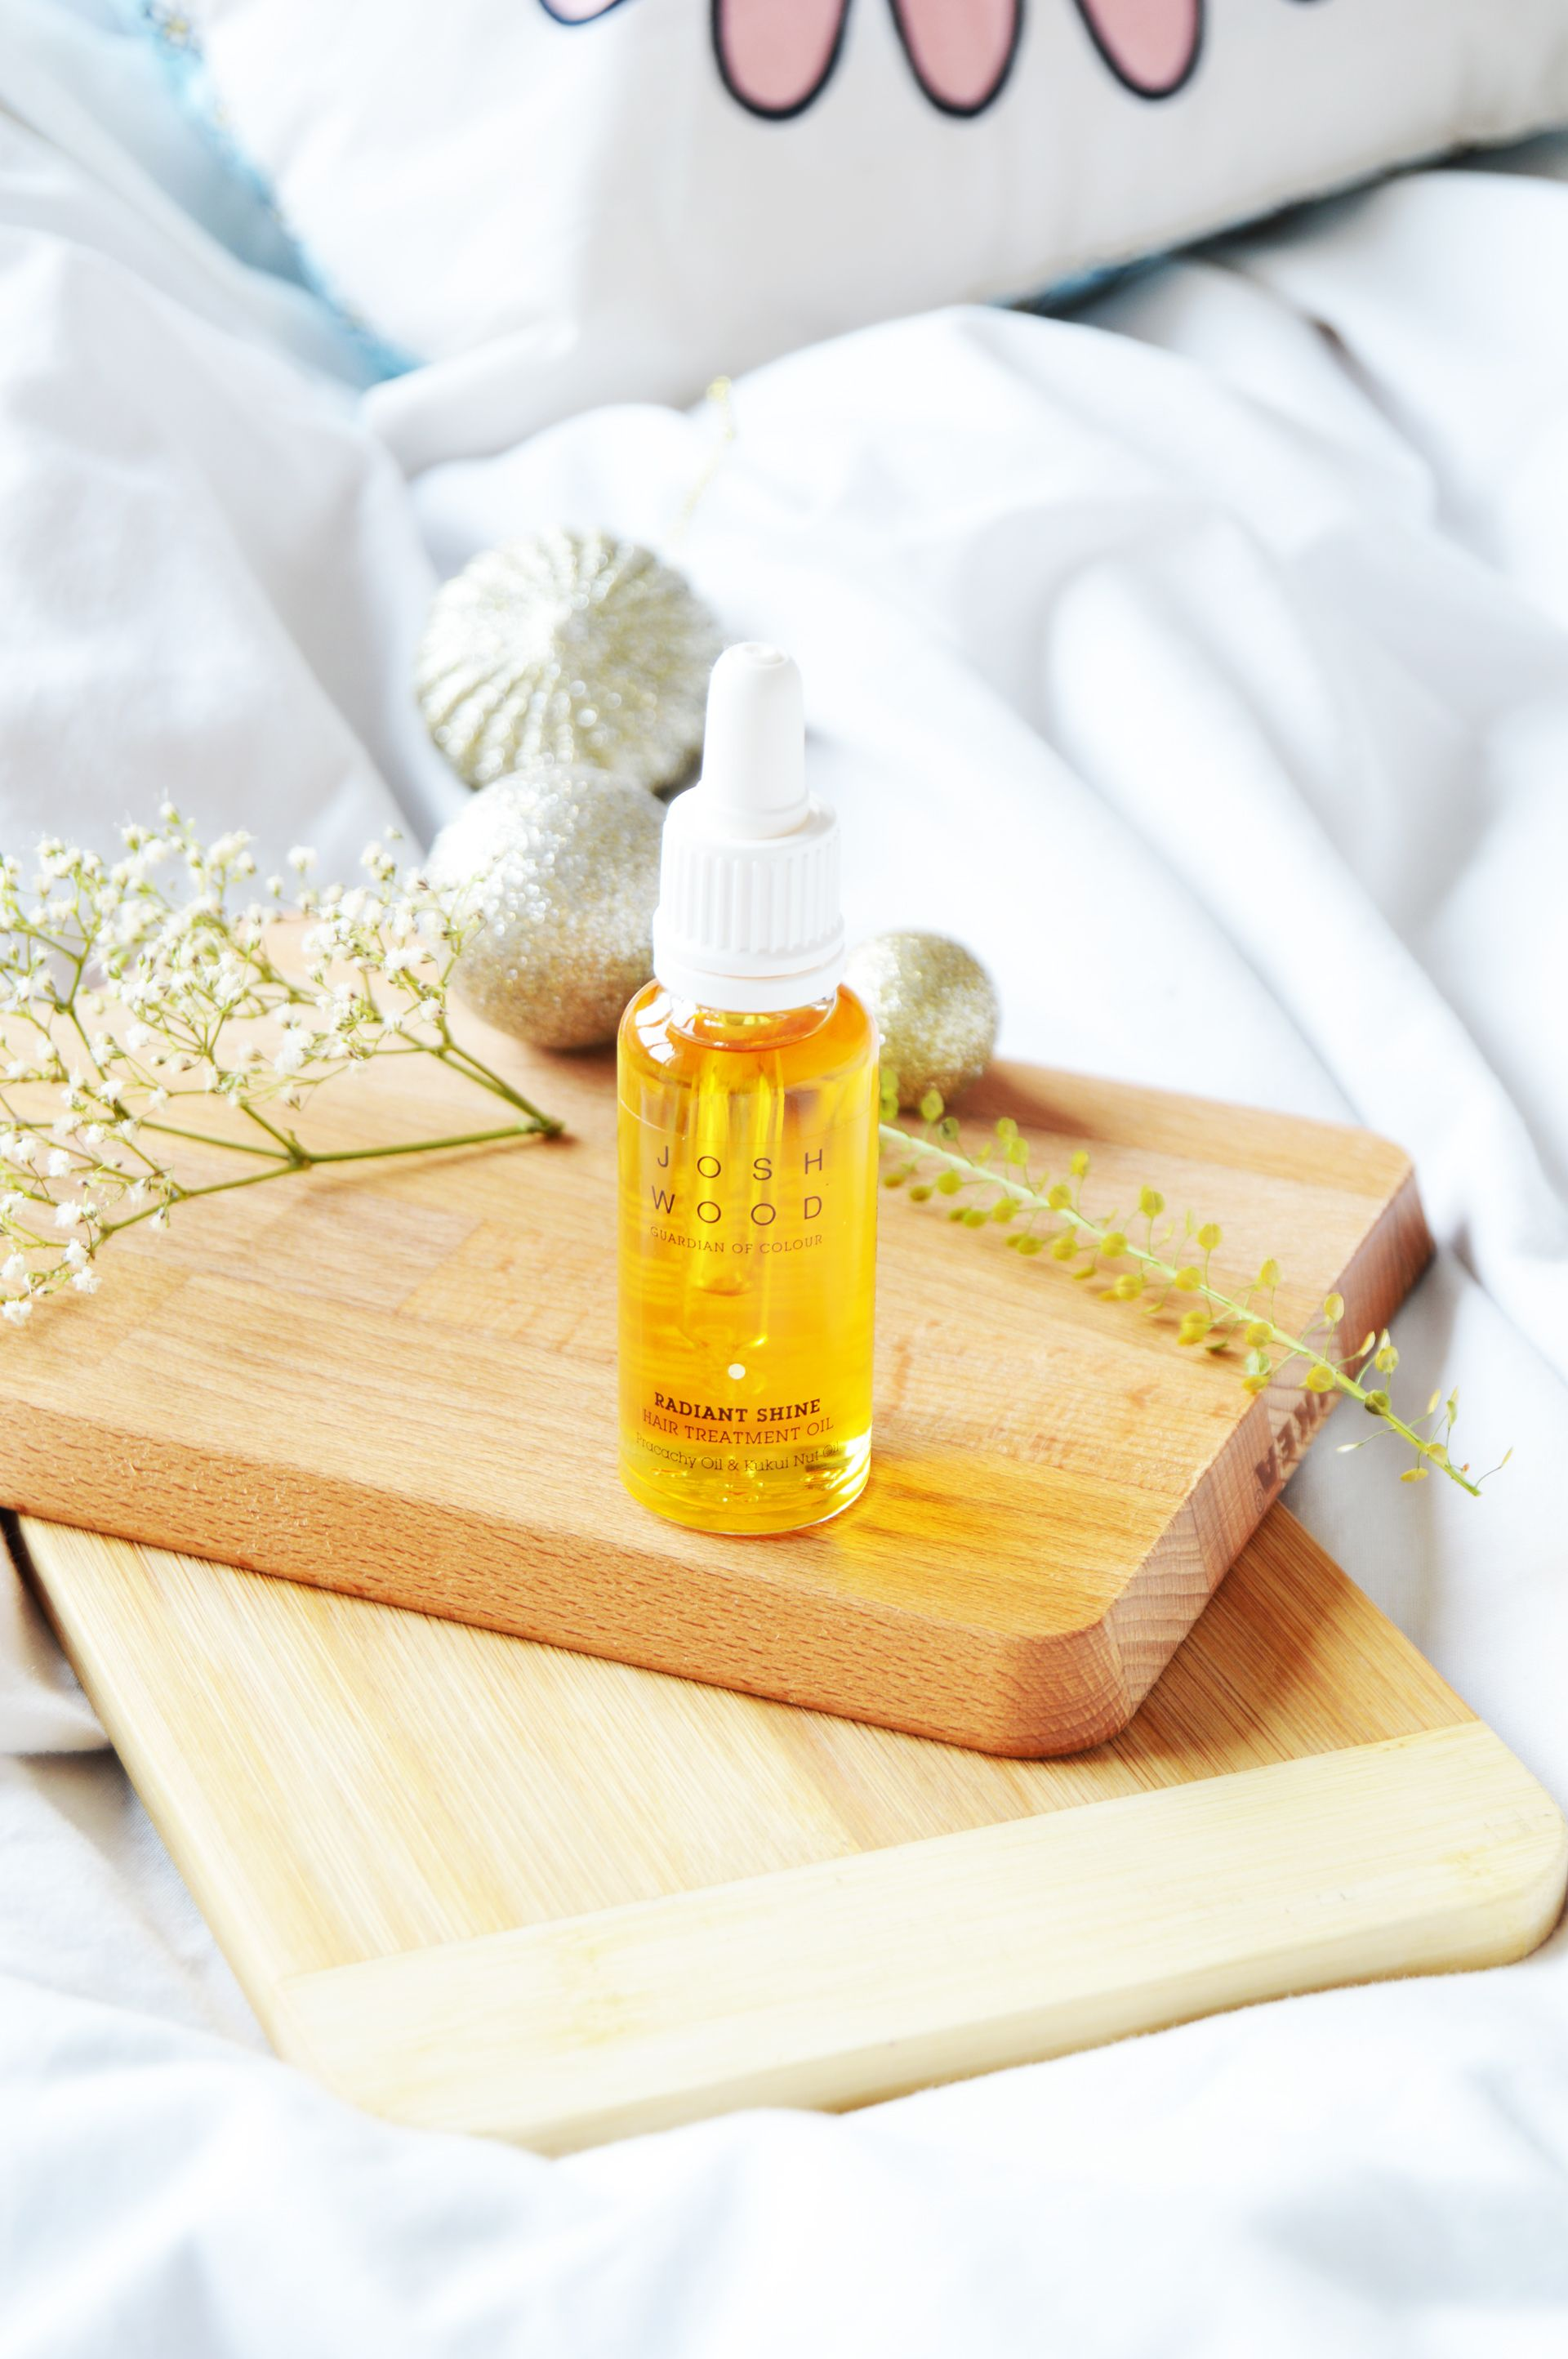 Josh Wood Radiant Shine Hair Treatment Oil is specifically created for coloured hair to give the radiant shine. You could also use it on uncoloured hair as well, you will still get that extra shine boost and healthier looking hair.